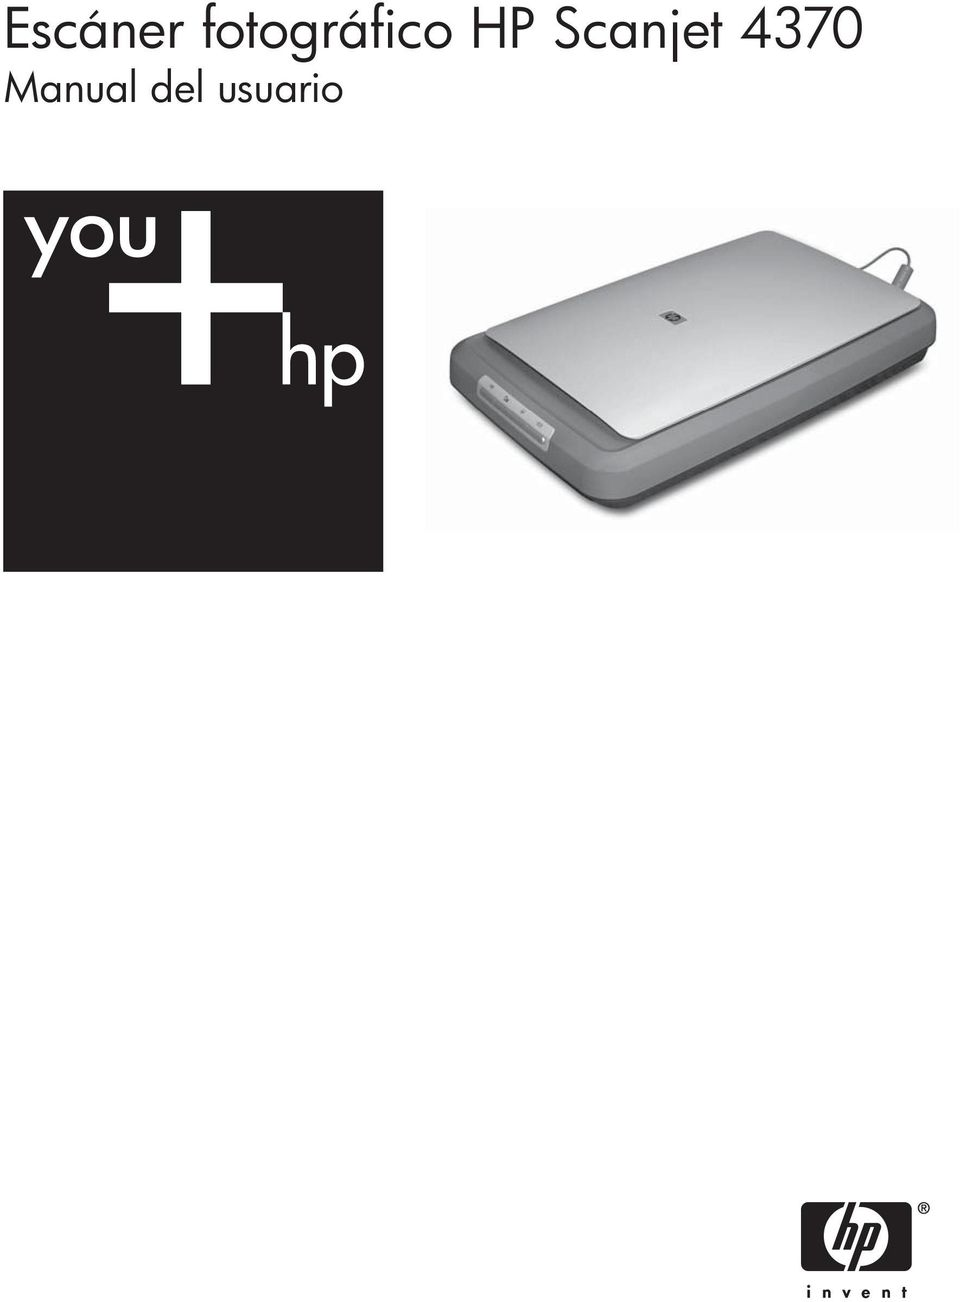 HP Scanjet